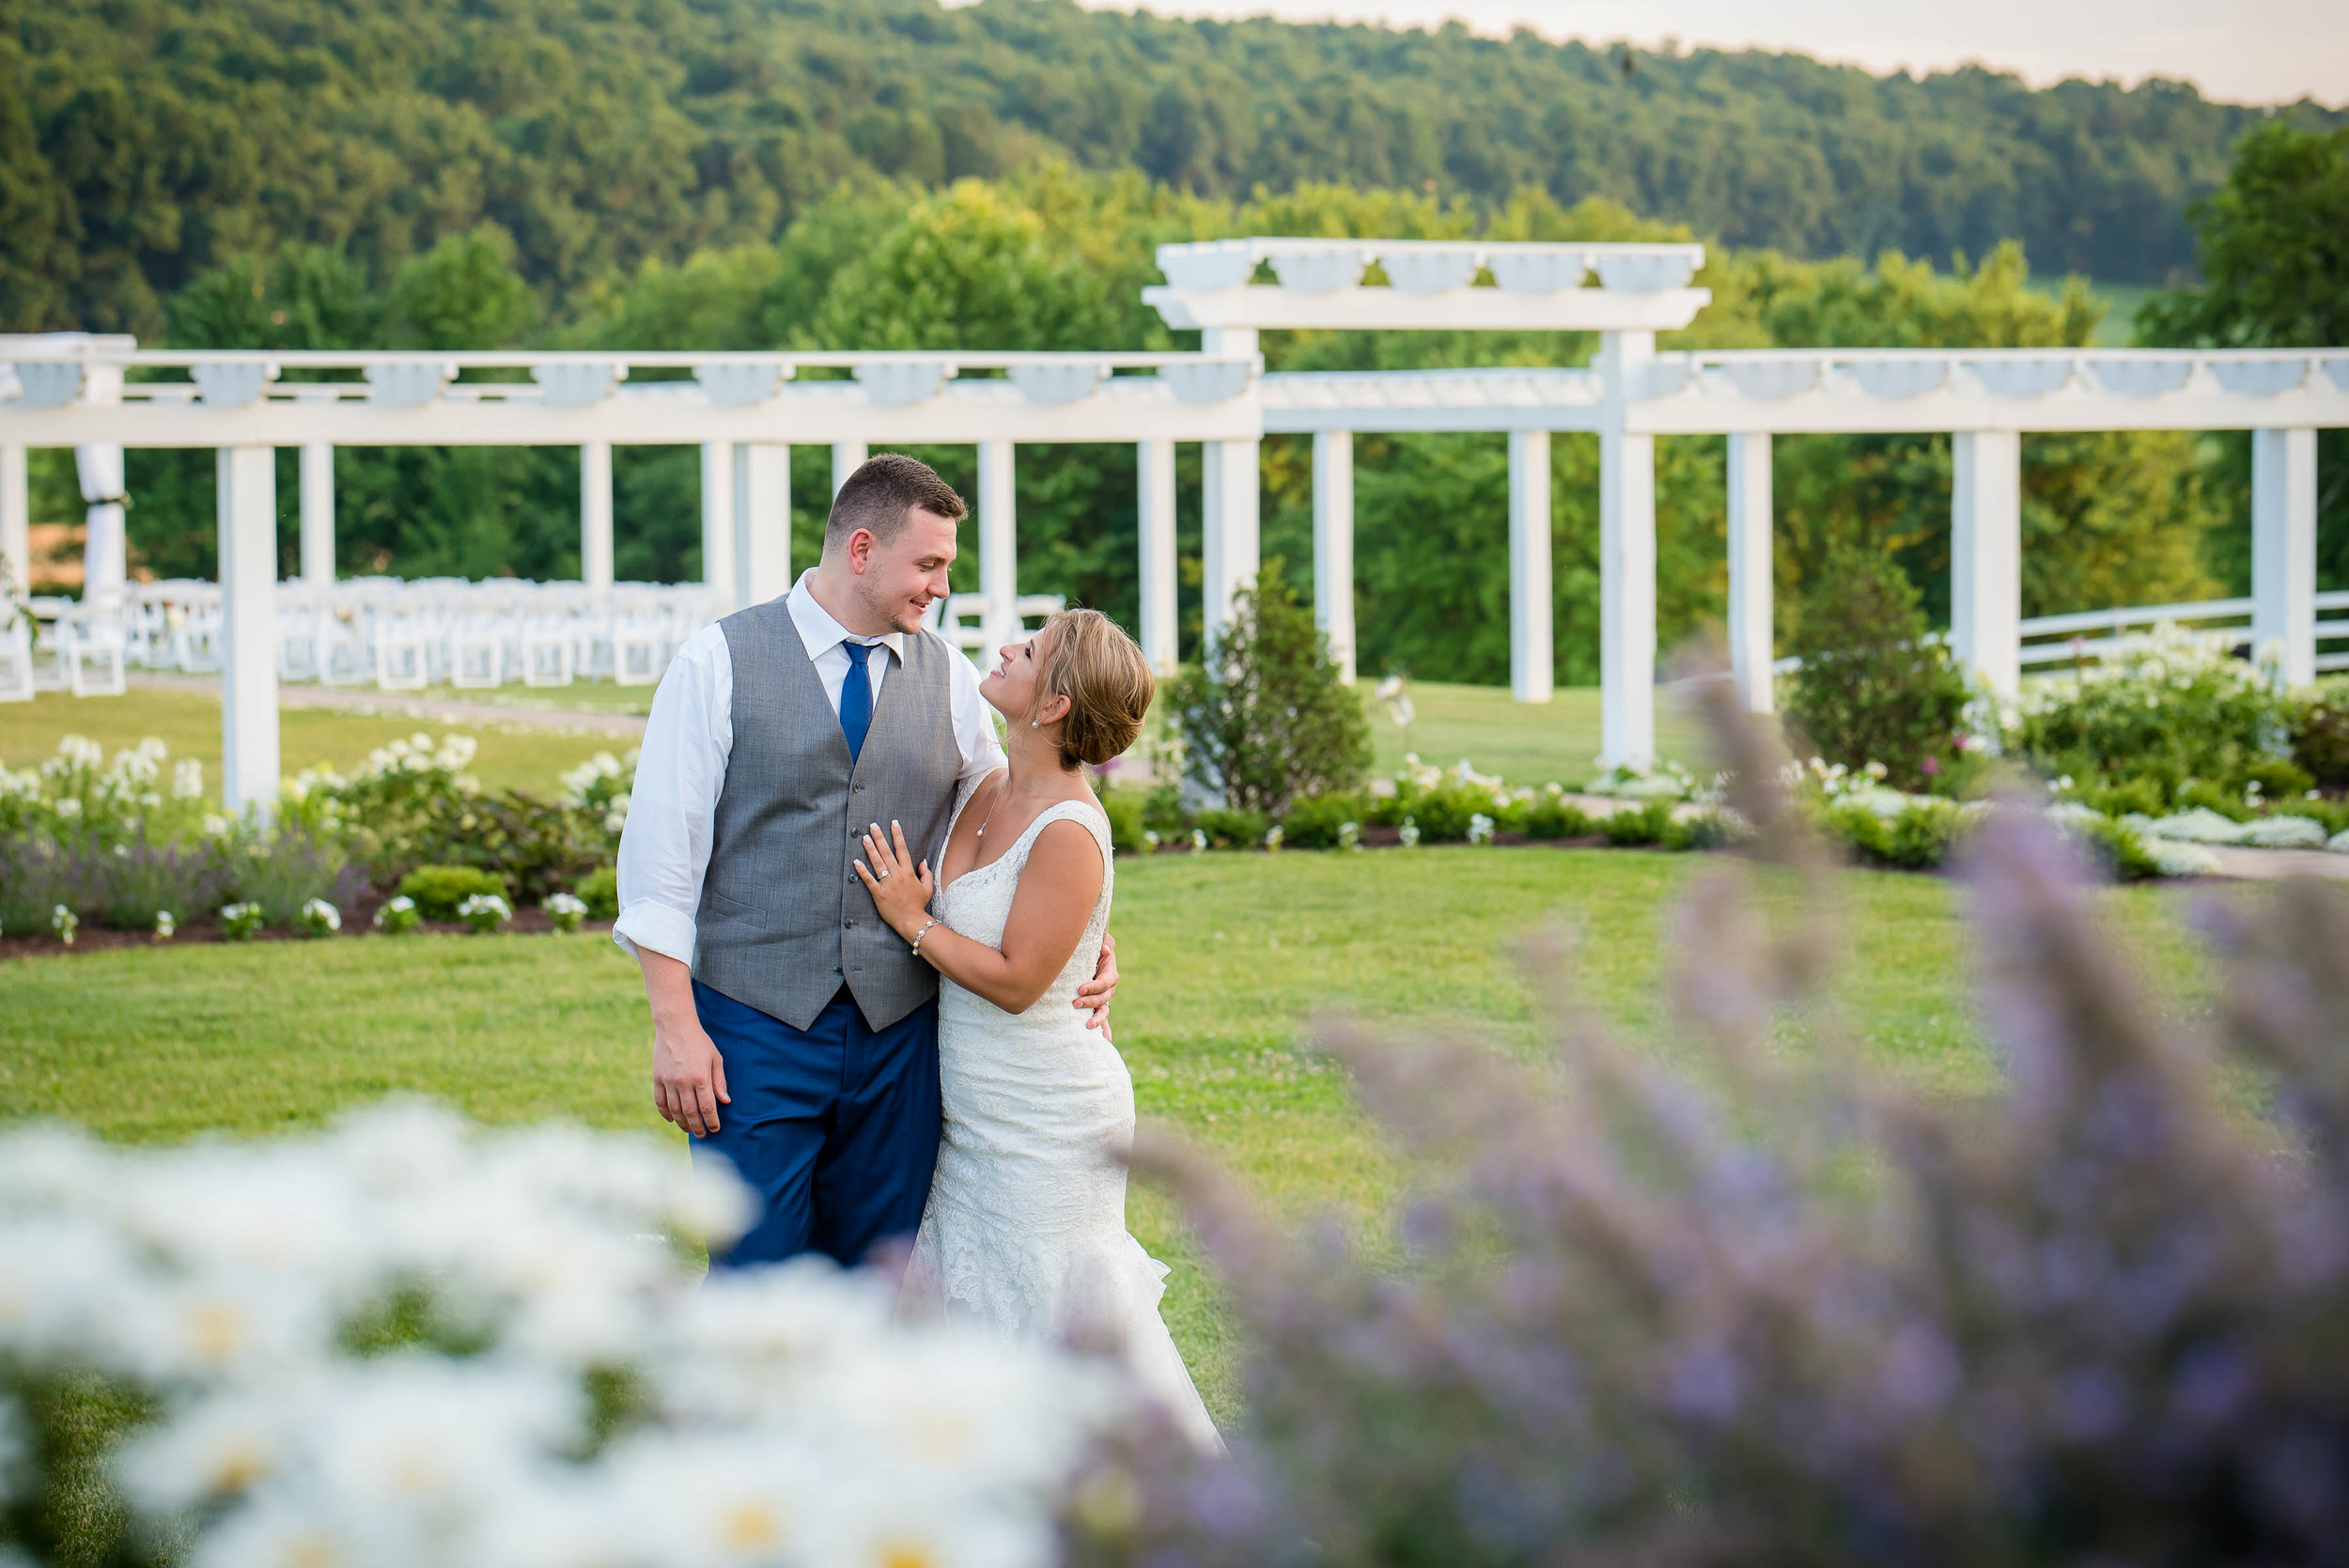 bride and groom with pergola in back.jpg